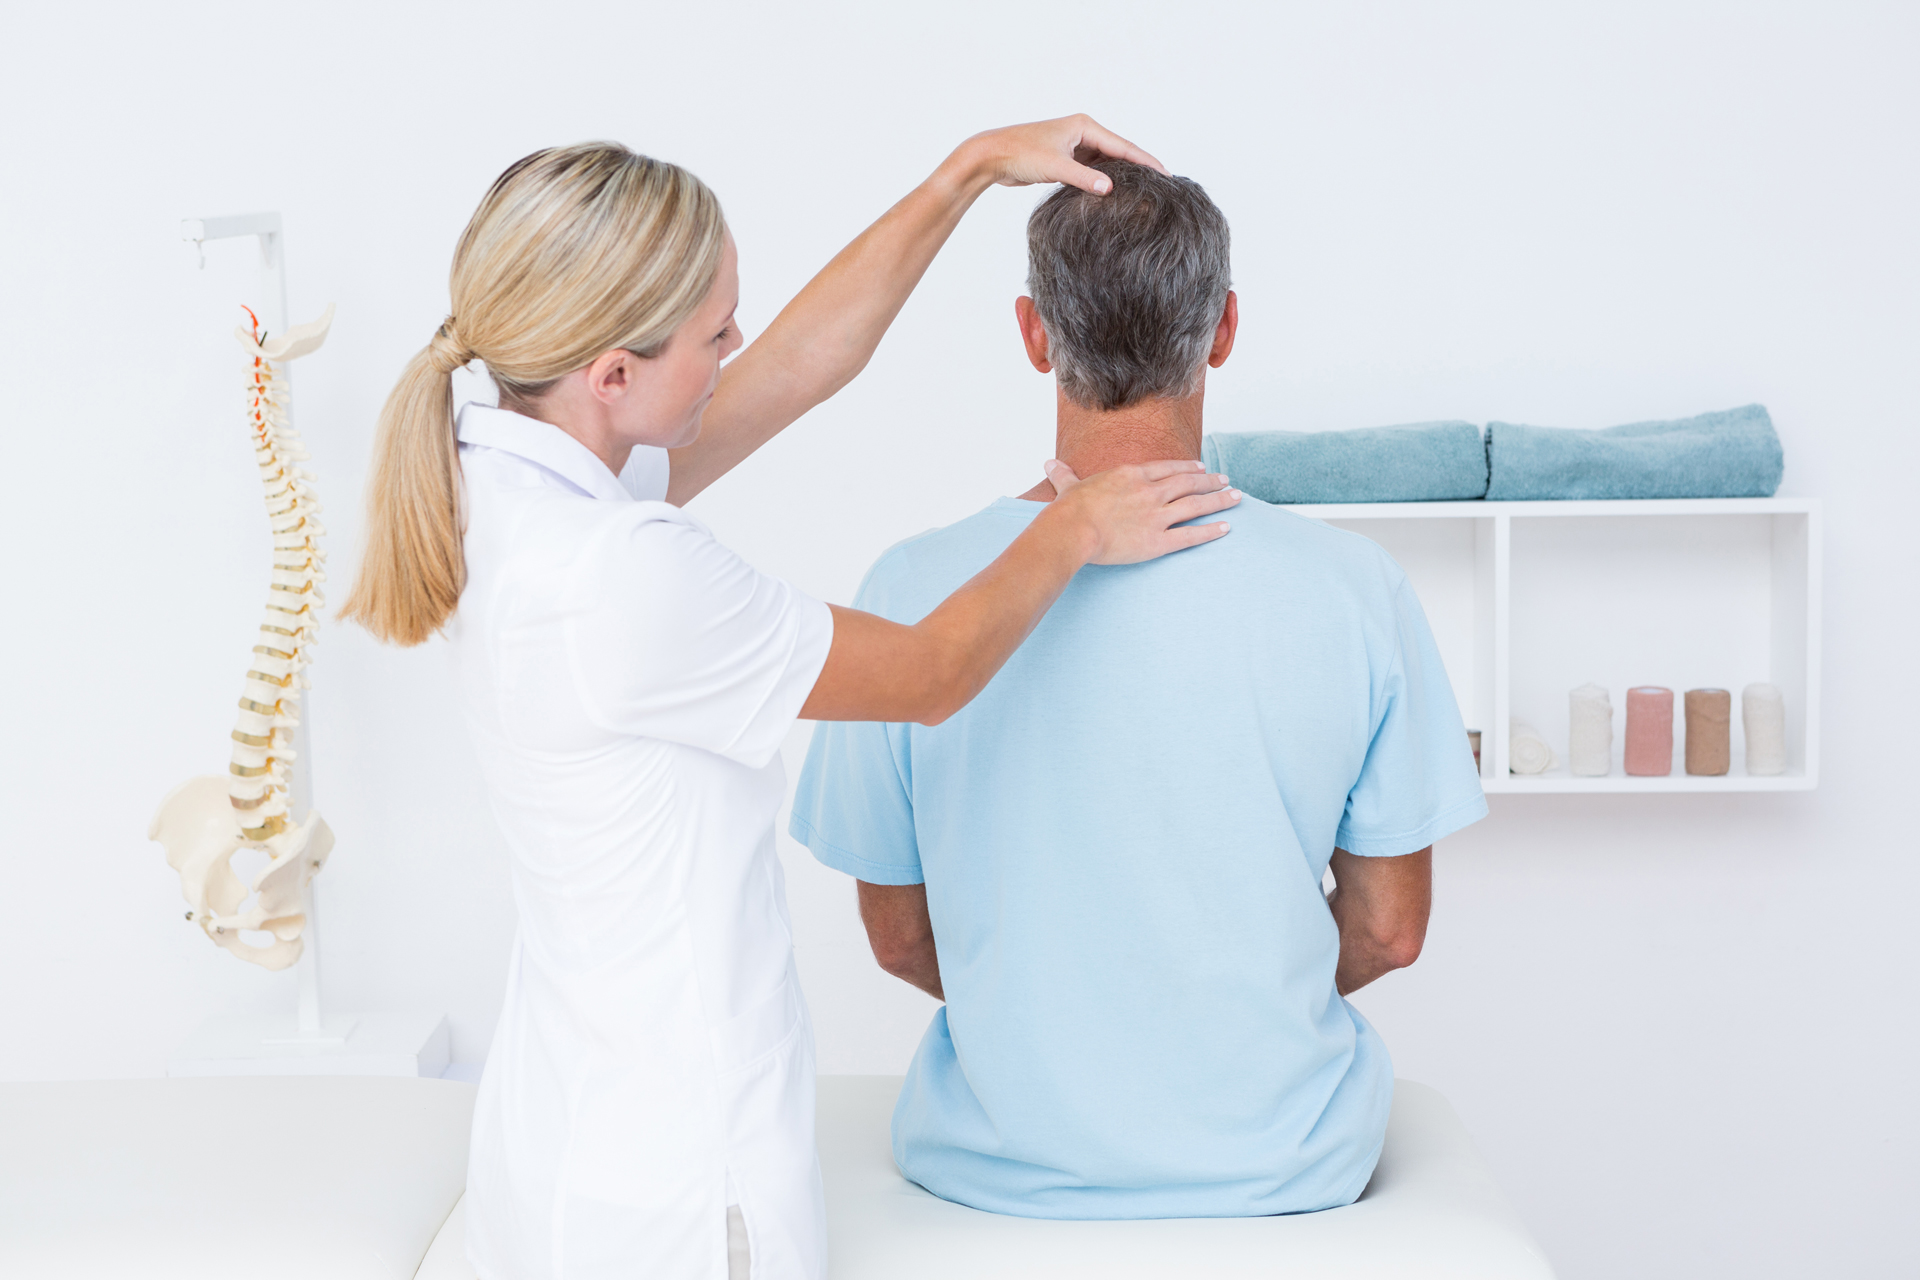 Chiropractors for Chiropractic Care in Chicago